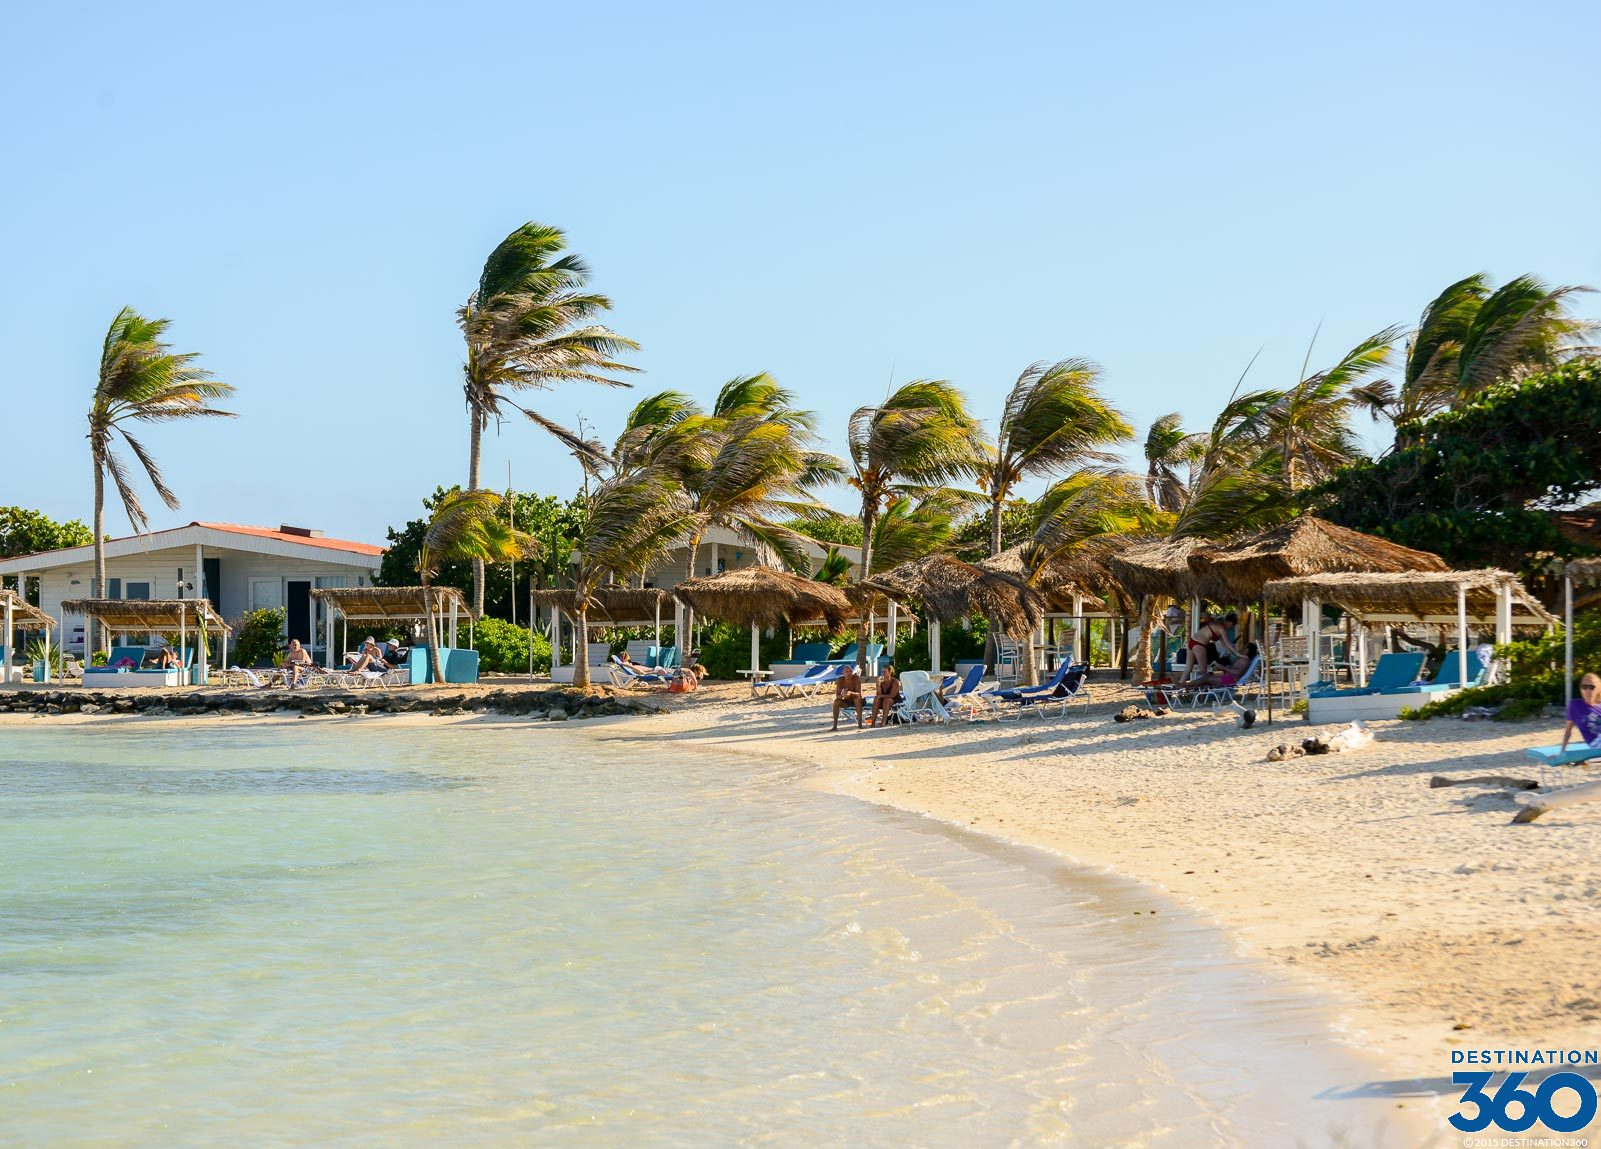 Beach Hotels in Bonaire